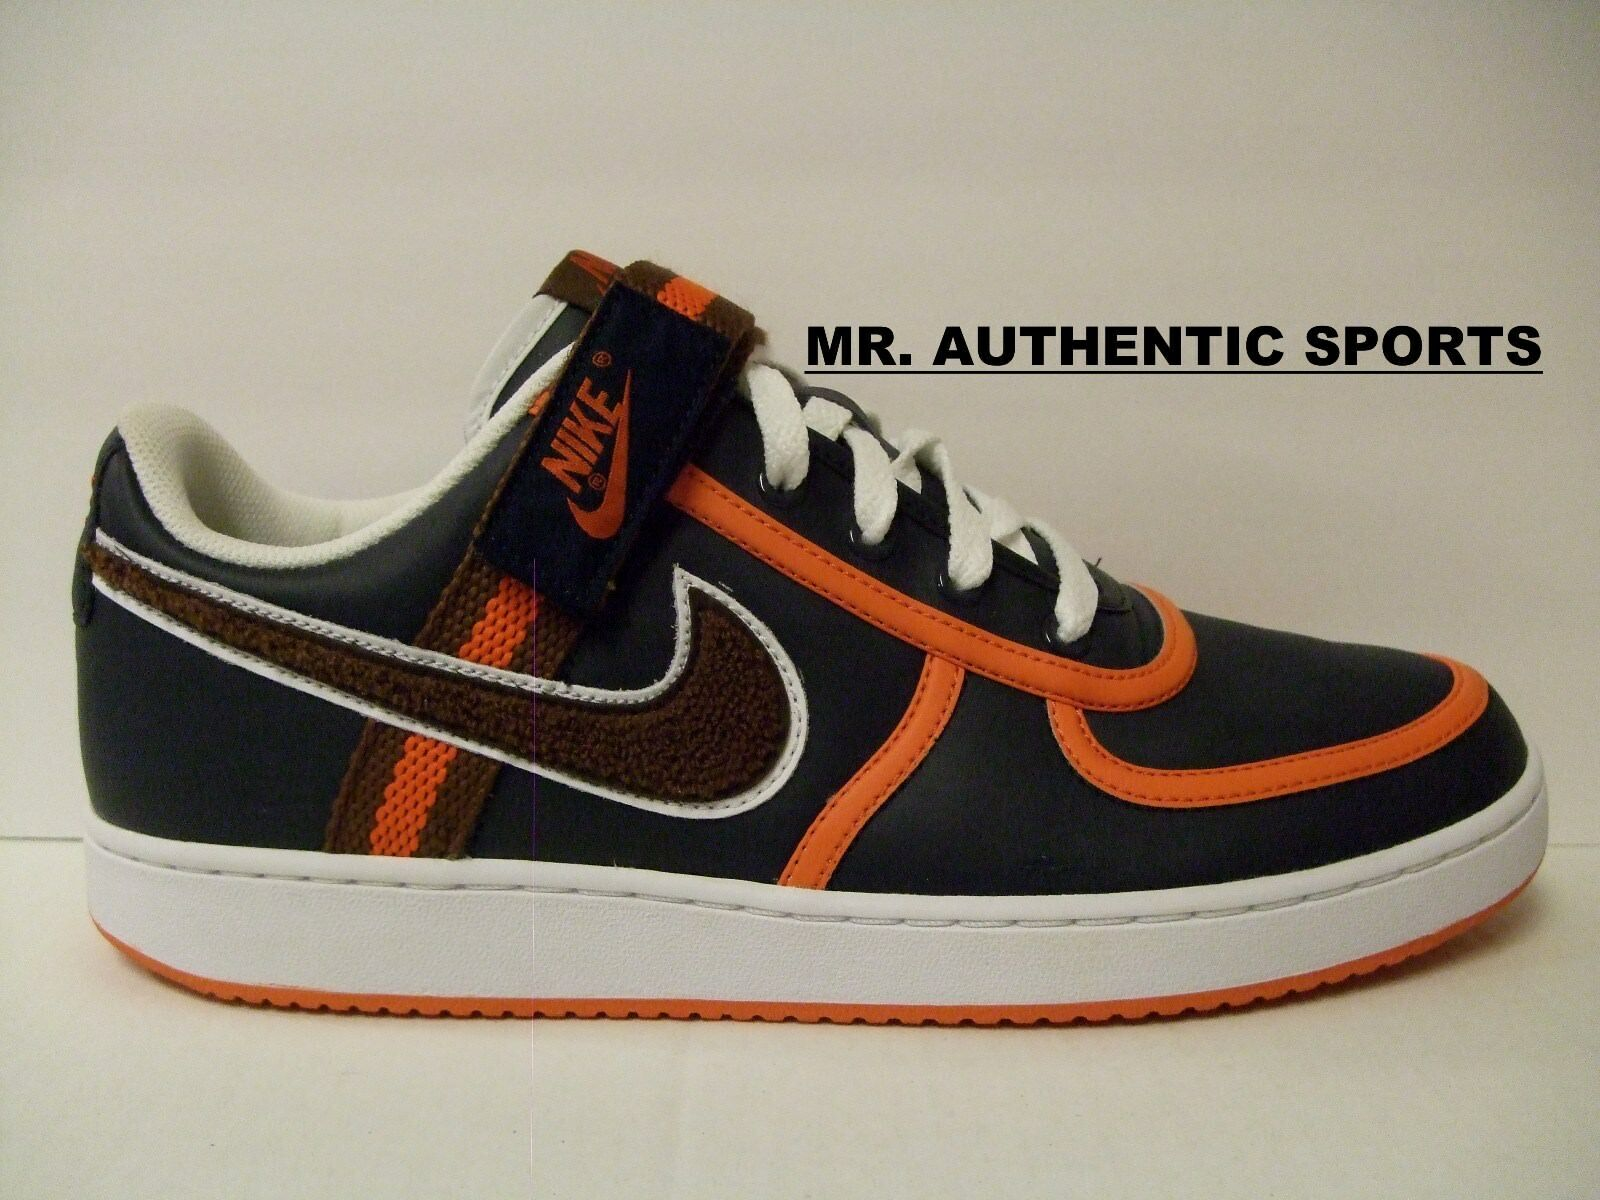 LOOK   NIKE VANDAL LOW SUPREMES LEATHER Sz 12 (312456-481)dunk sb blazer AF1 one